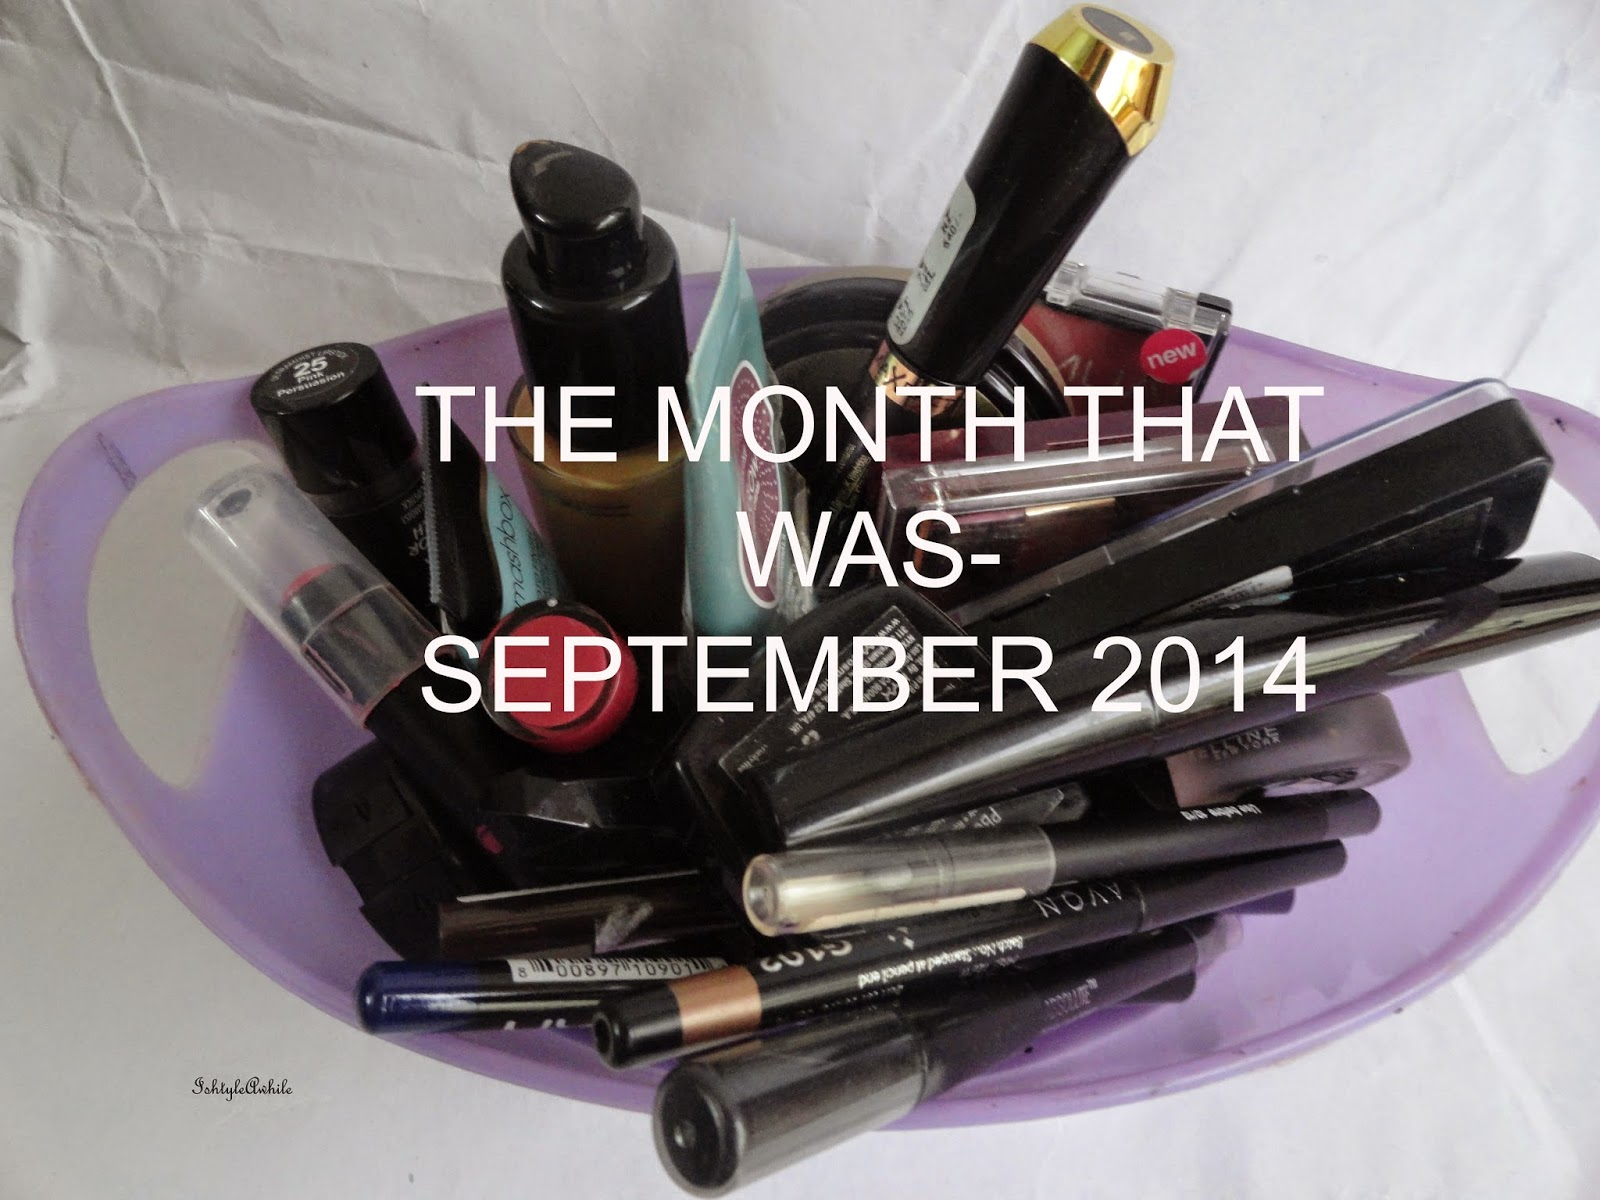 The month that was- September 2014 image